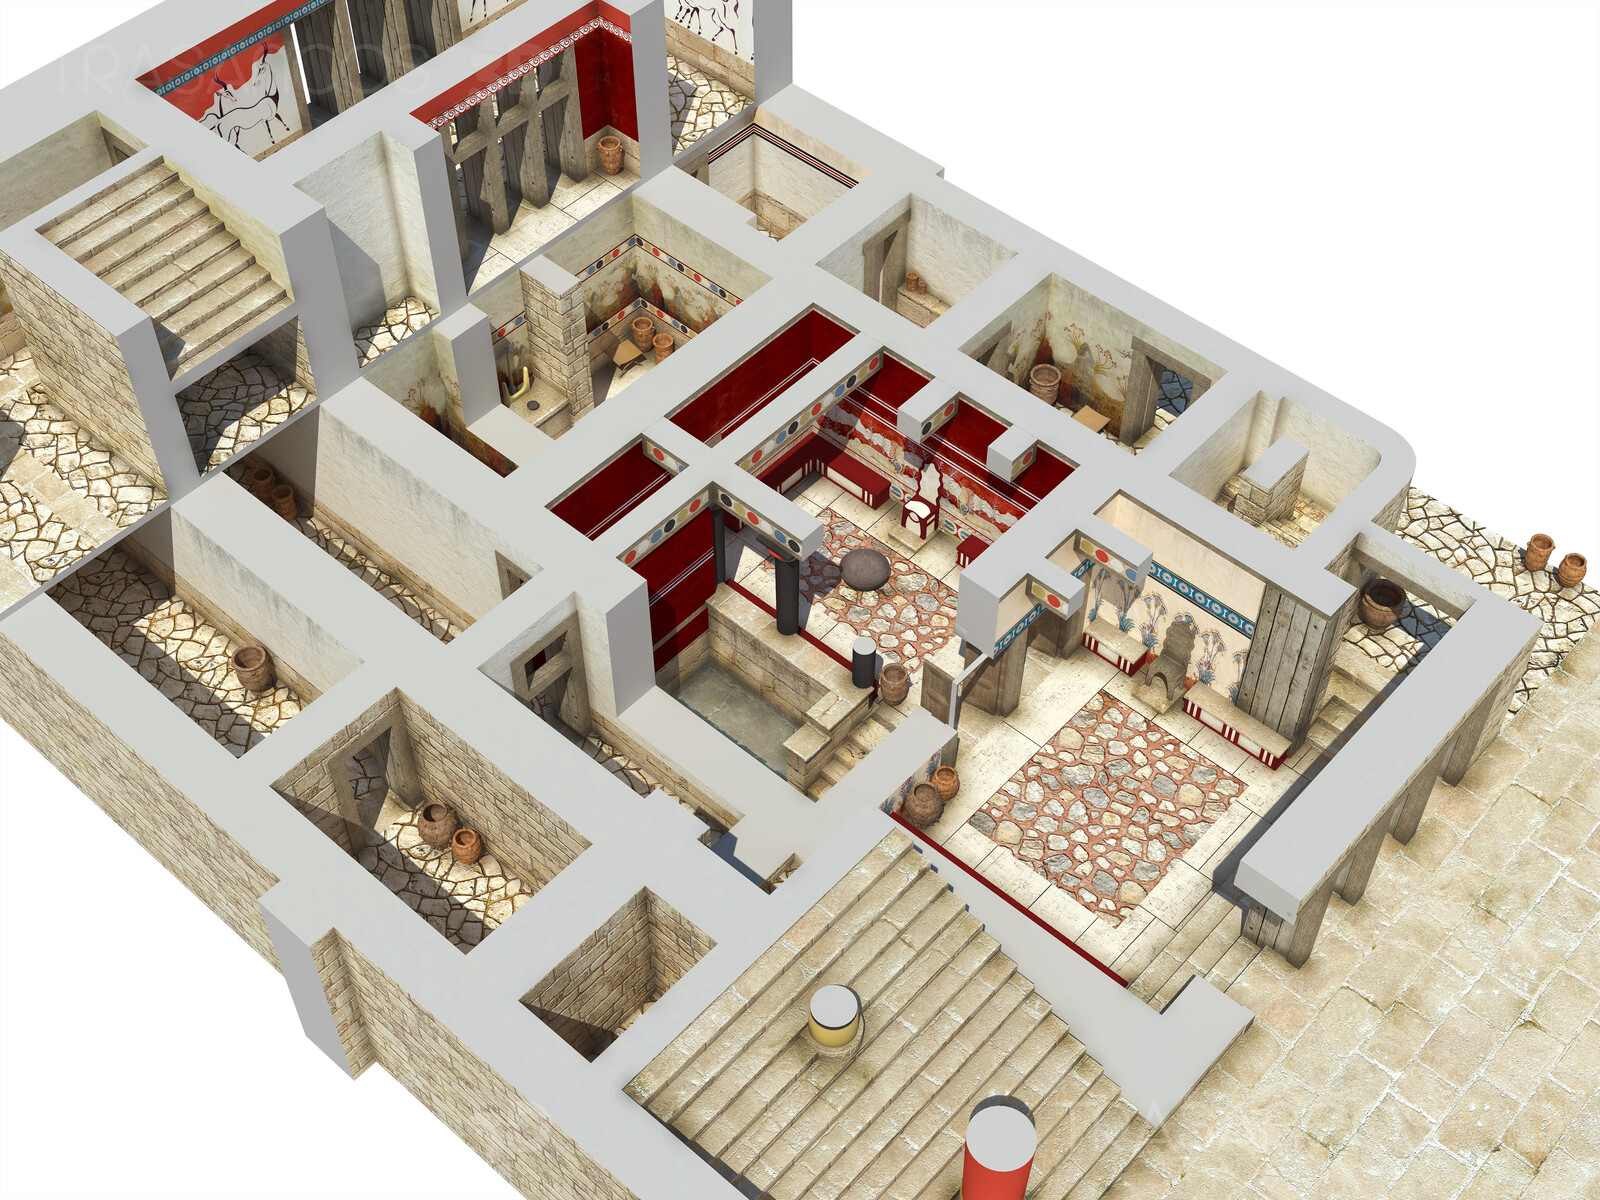 Cut away showing the interior area of the Throne Room of the Palace of Cnossos. Modeled in collaboration with: - Diego Blanco